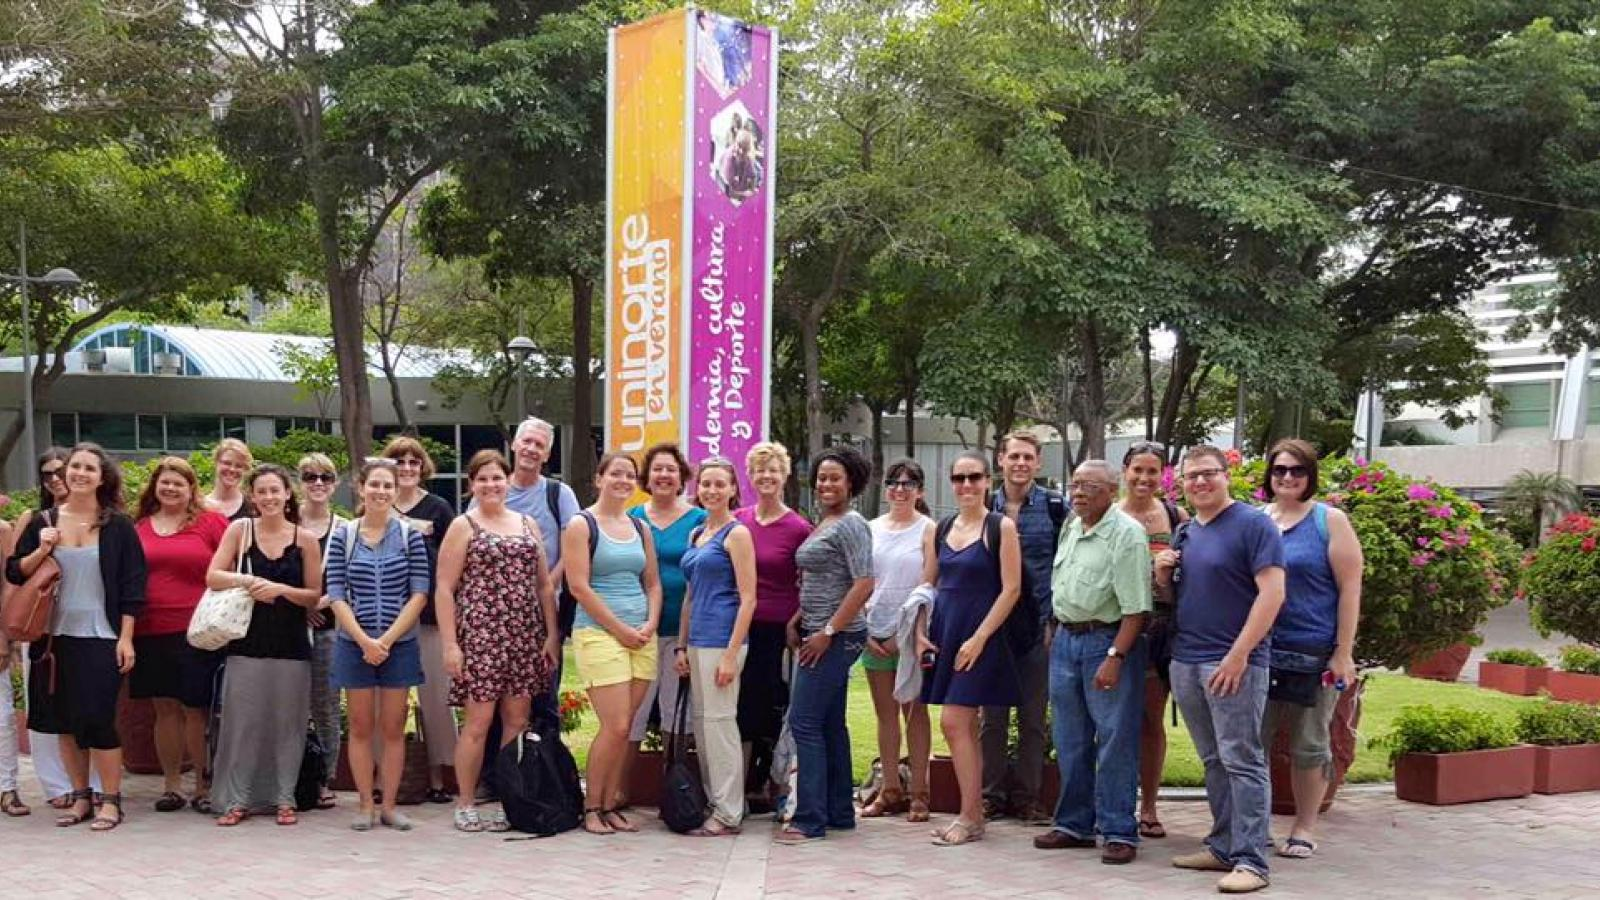 Teachers on study abroad trip in South America